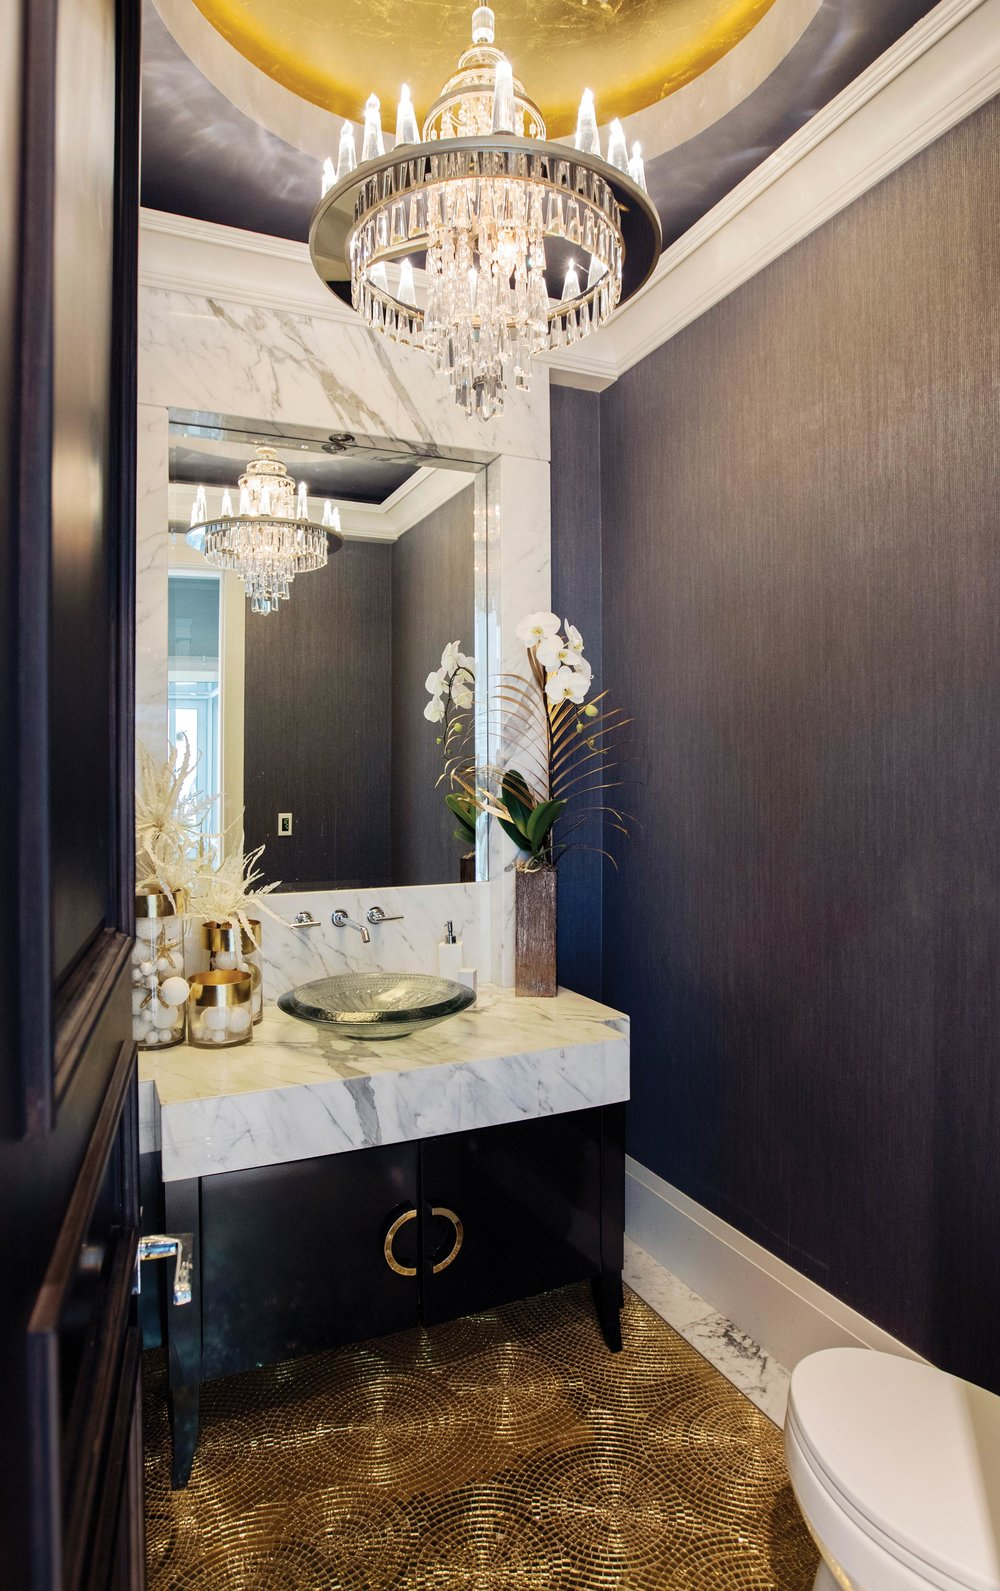 The powder room interior combines a grey marble bathroom vanity highlighted with white Christmas décor and a full blooming white Phalaenopsis orchid. Accenting the orchid is a single gold-dipped palm frond. Courtesy of Granville Island Florist.